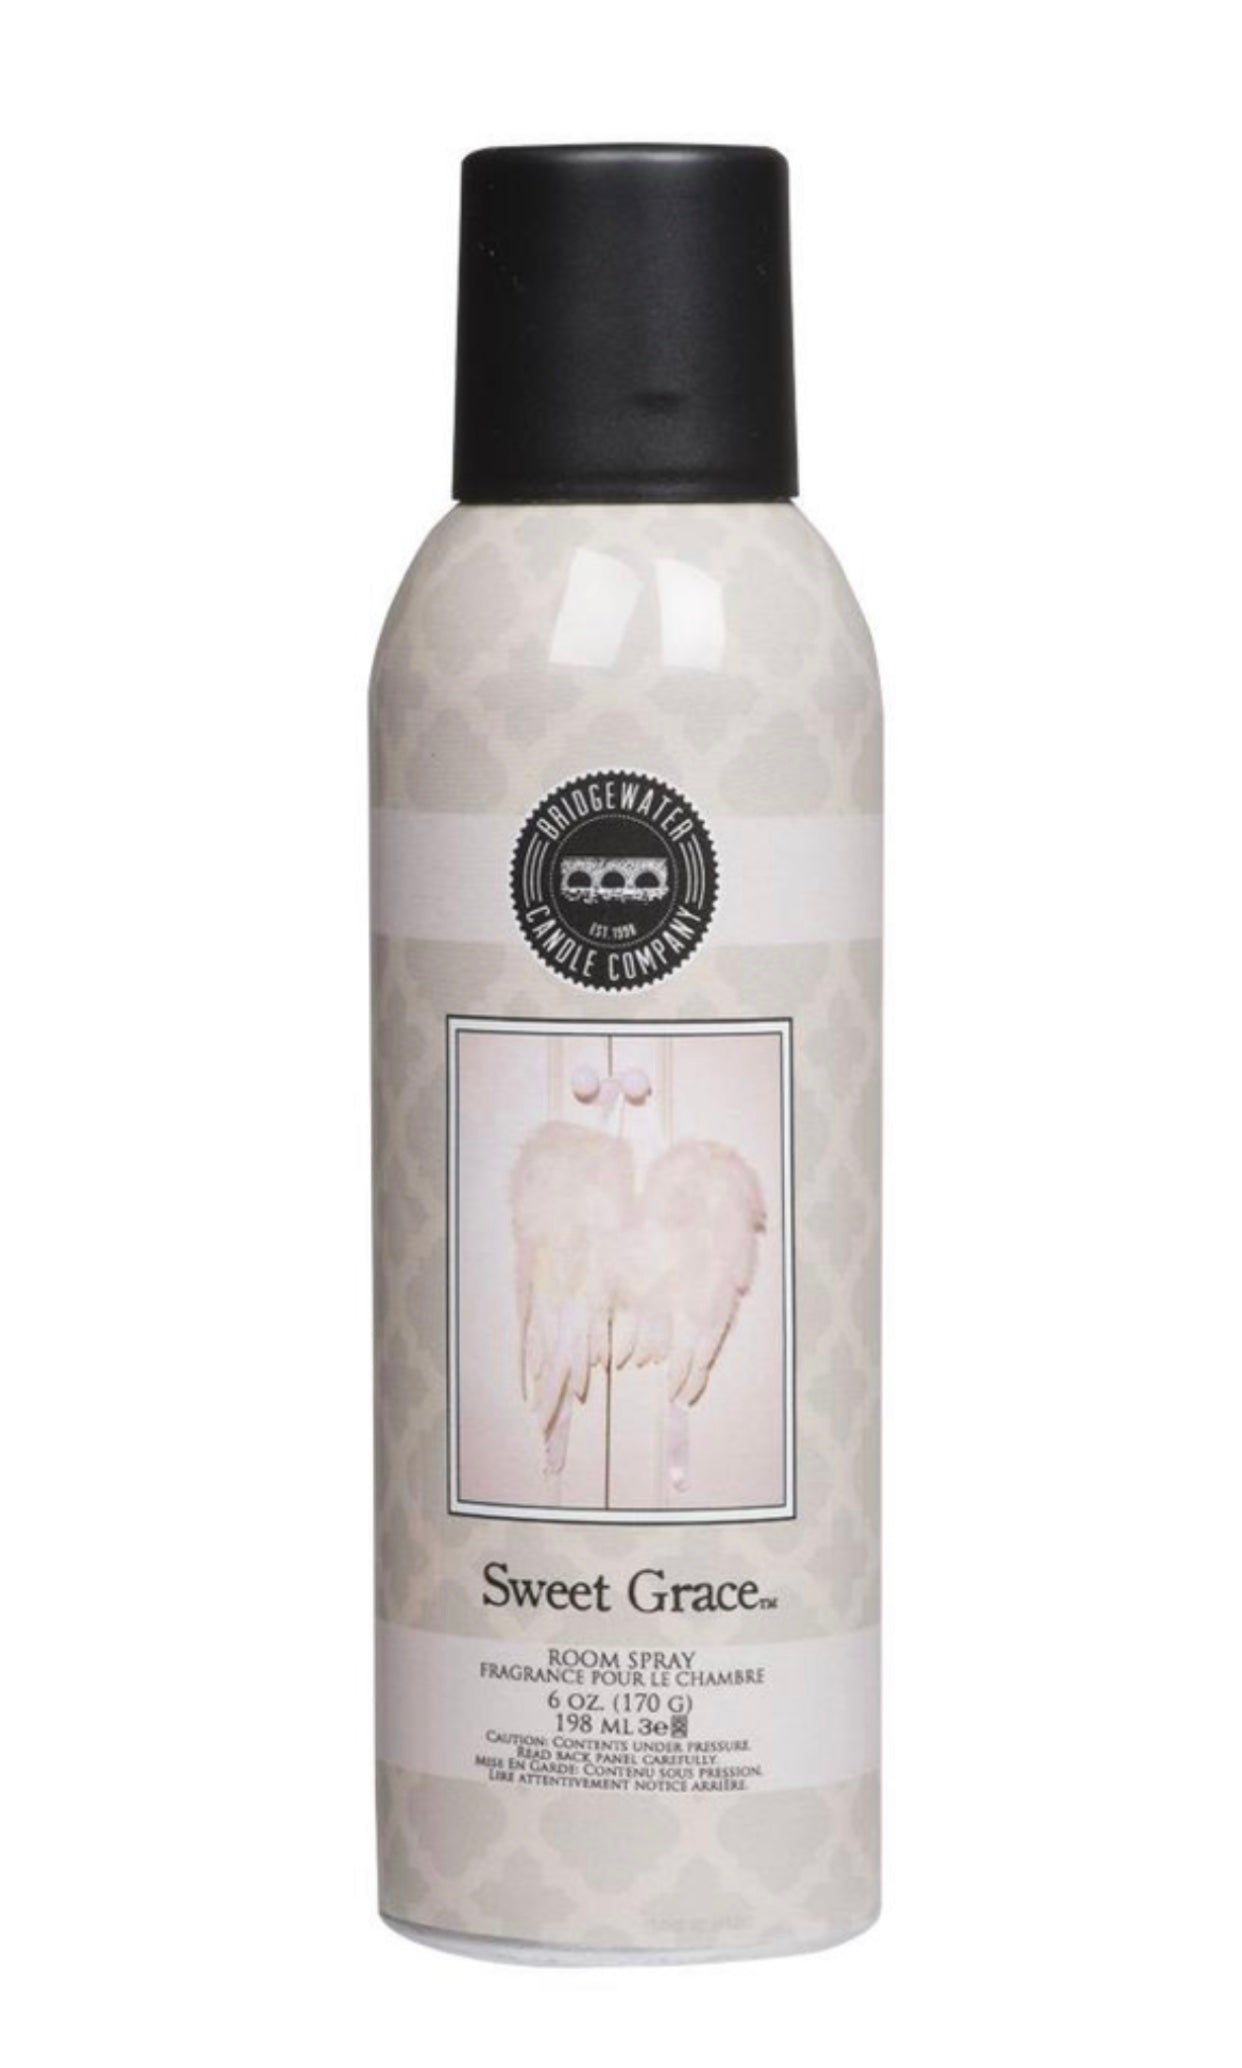 Sweet Grace Scented Room Spray